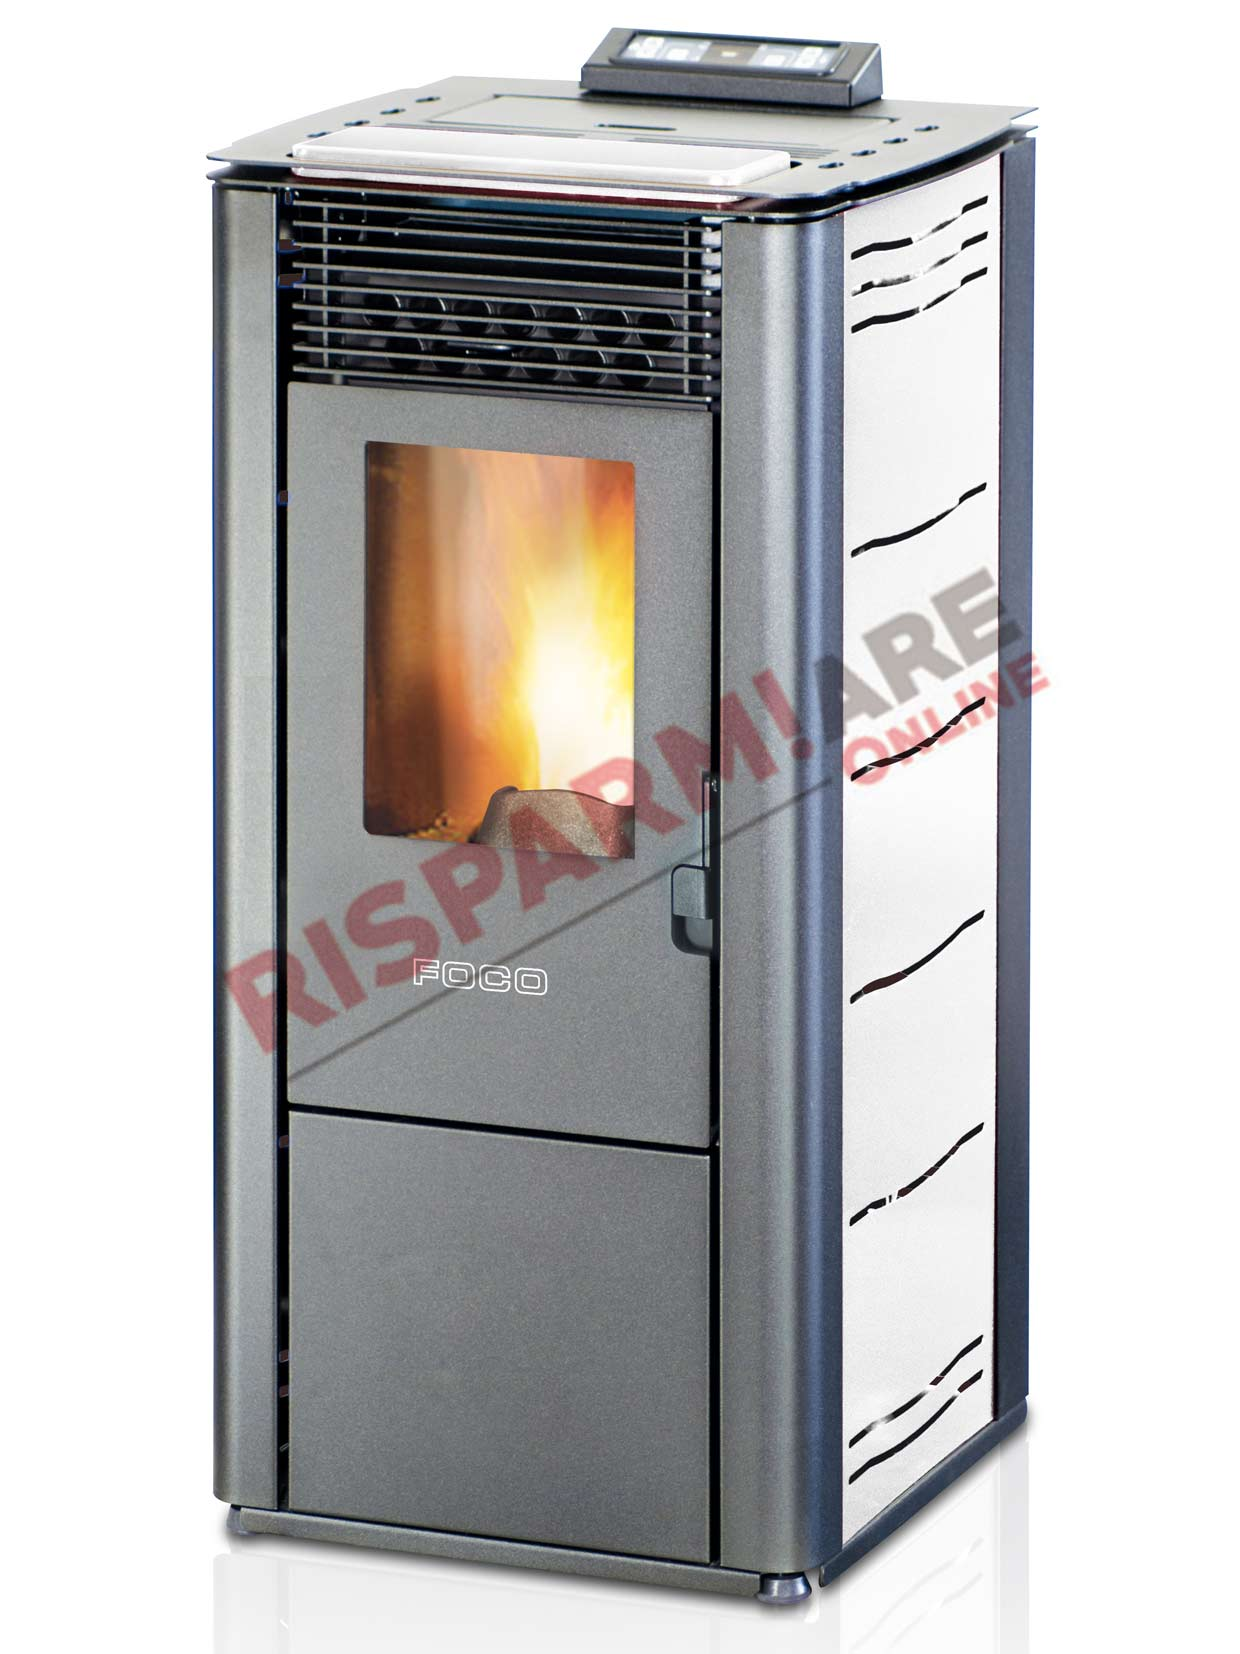 Foco stufa a pellet traditional steel 12 10 10kw for Foco stufe pellet